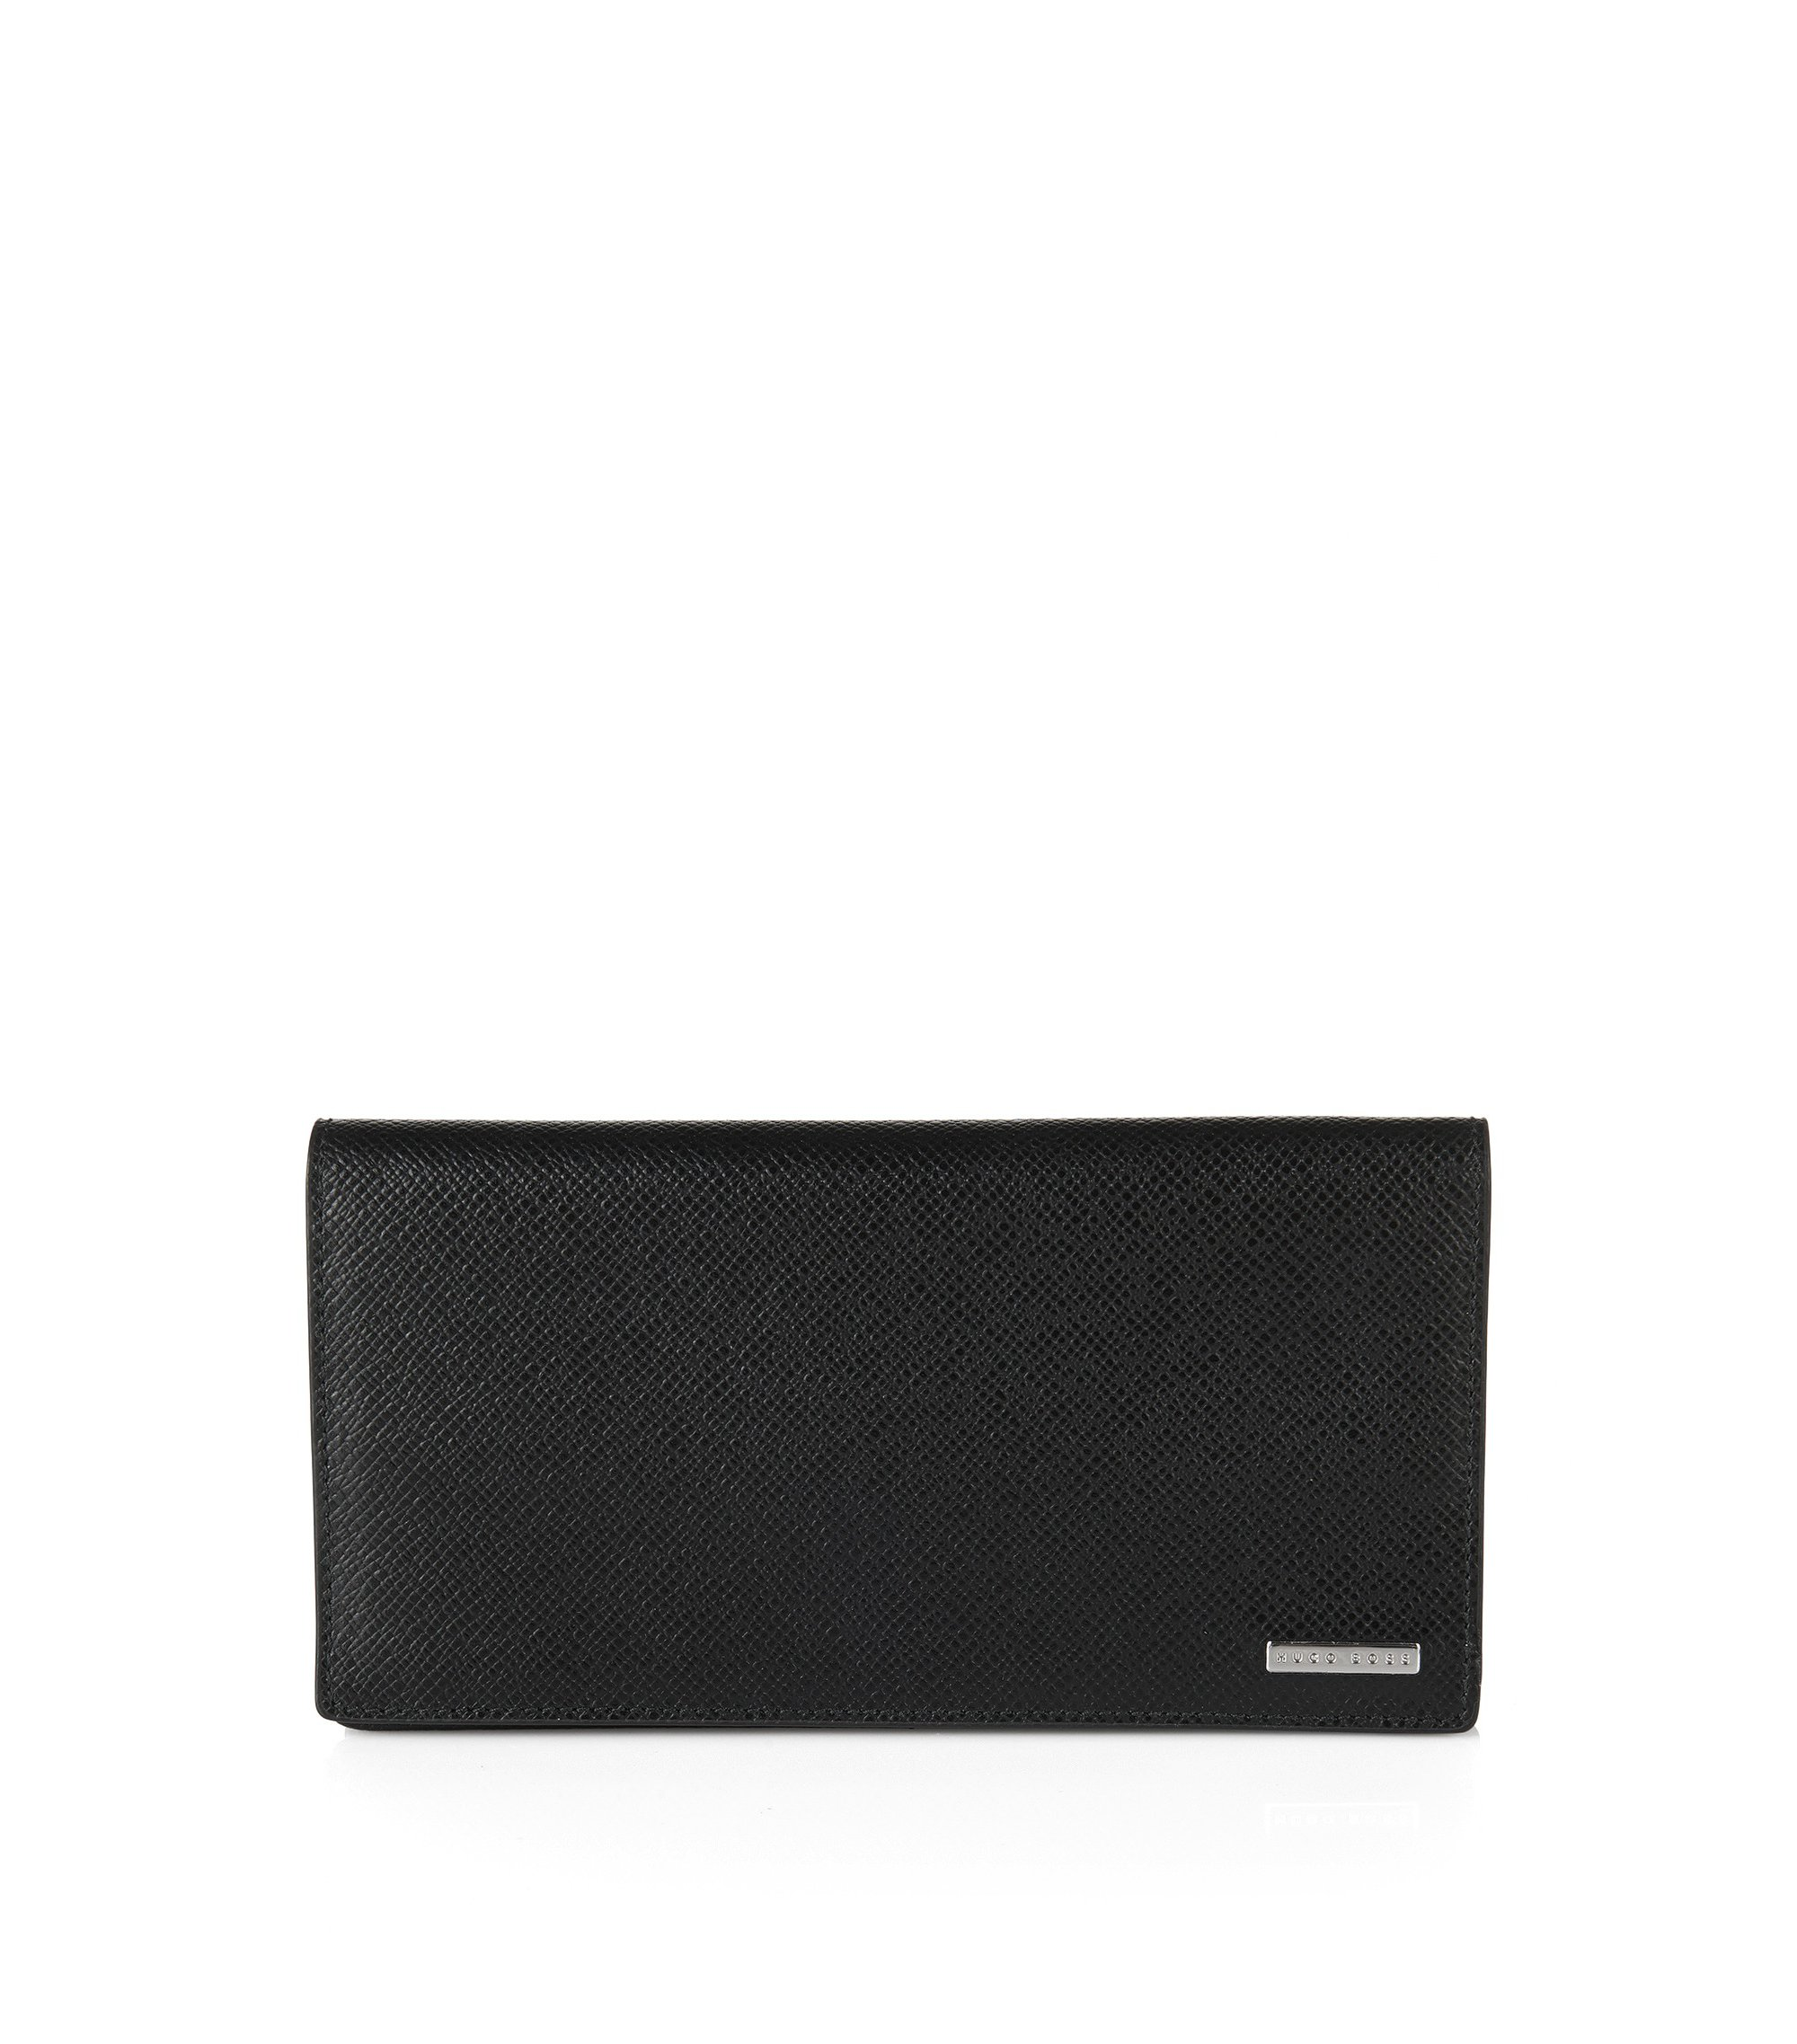 Cartera plegable de diseño continental en piel palmellato de Signature Collection, Negro